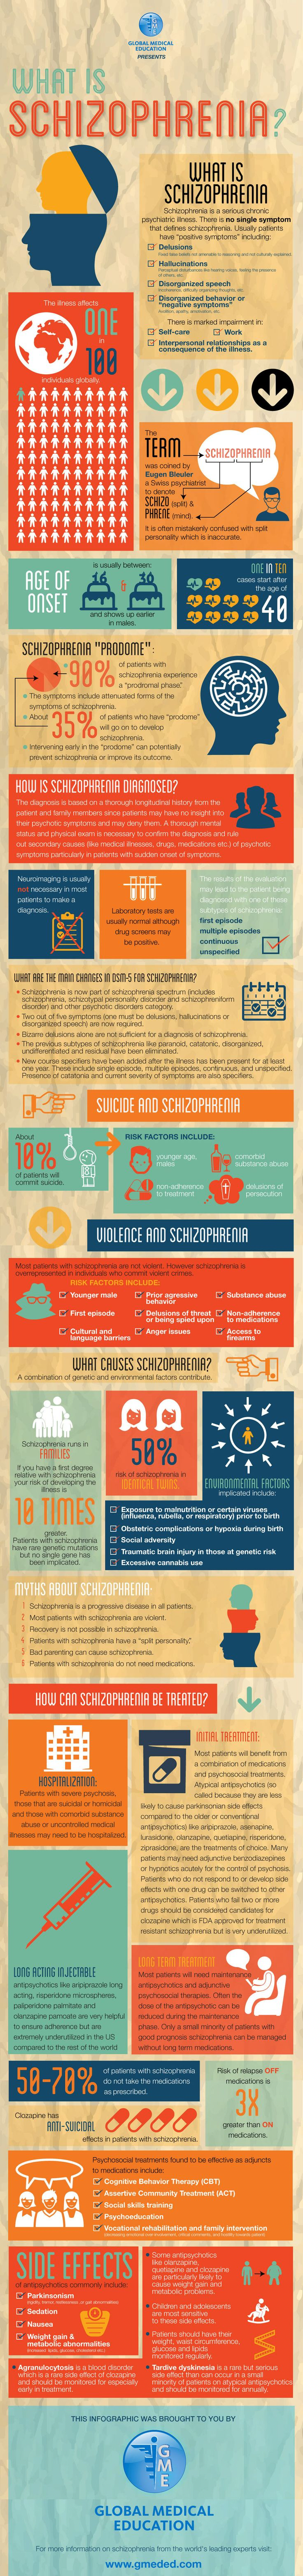 Facts and Myths about Schizophrenia